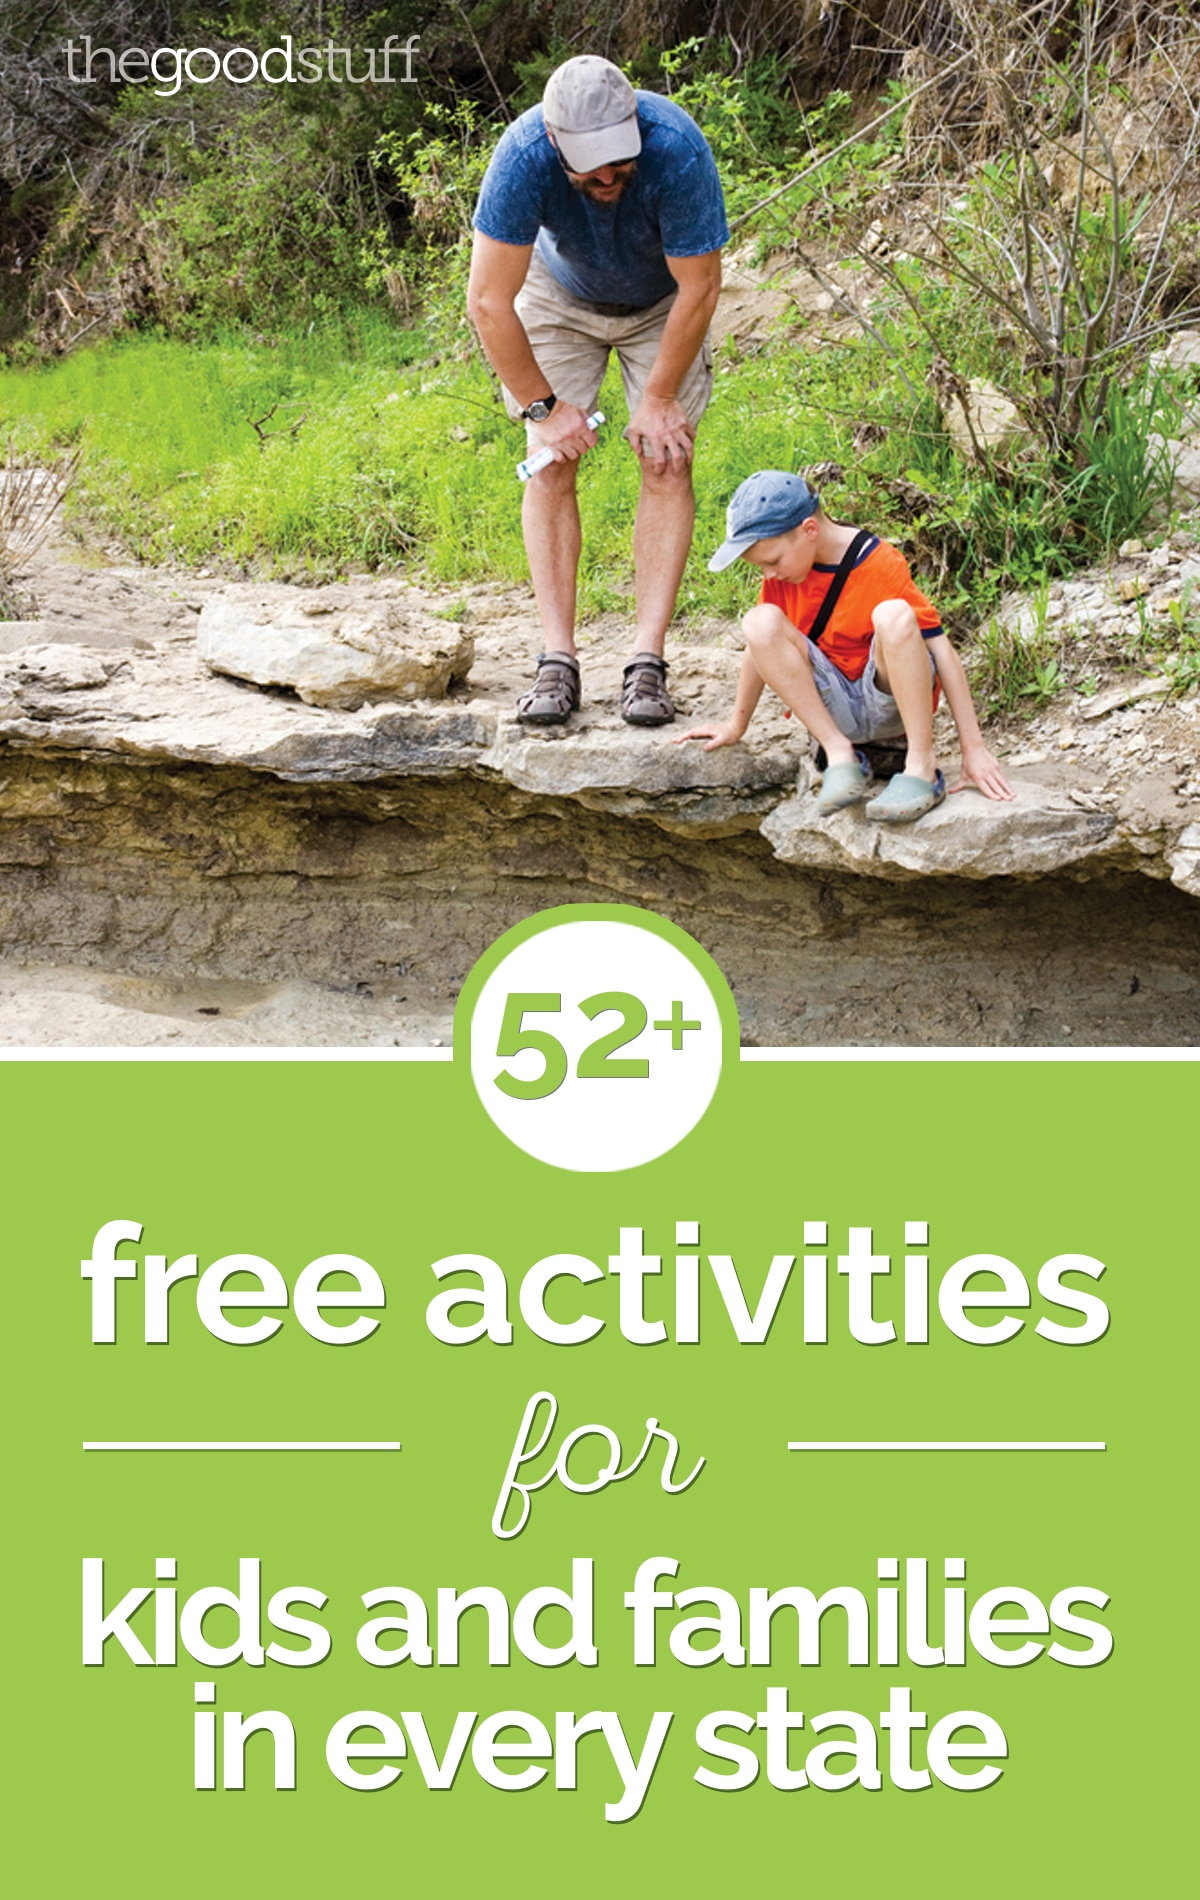 52+ Free Activities for Kids and Families in Every State - thegoodstuff